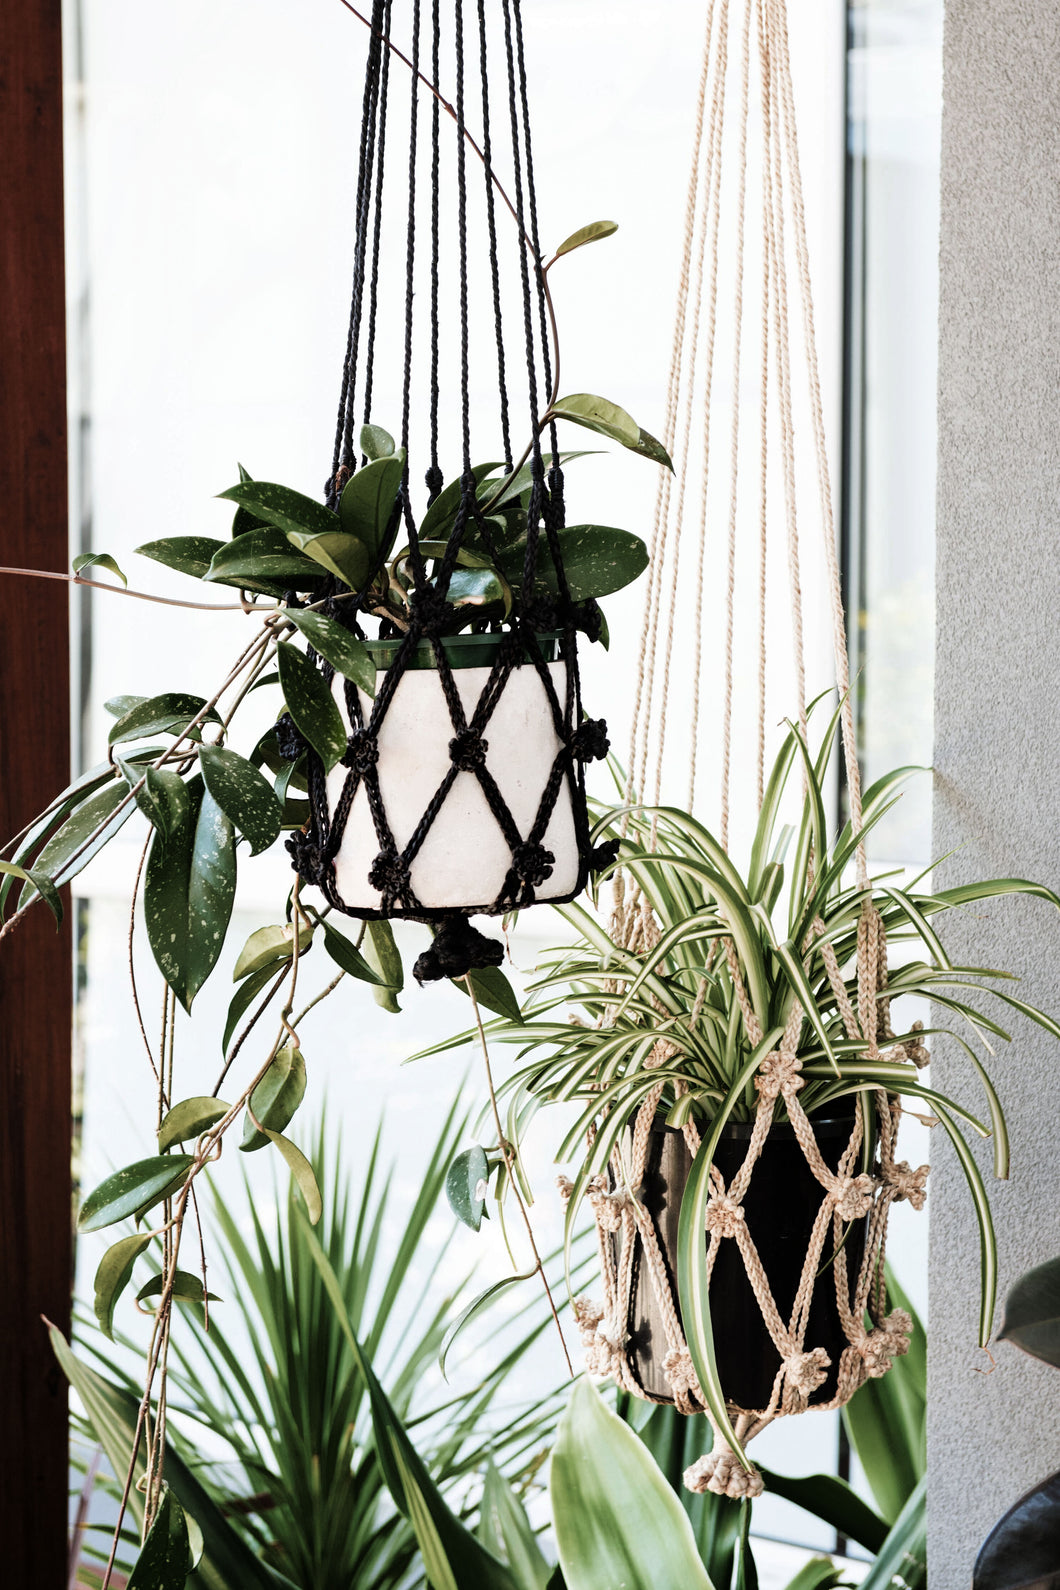 Our macrame plant hangers are designed to display your indoor plants with unique flair. flower plant hanger. jute plant hanger. macrame plant hanger. hanging plants. black plant hanger.